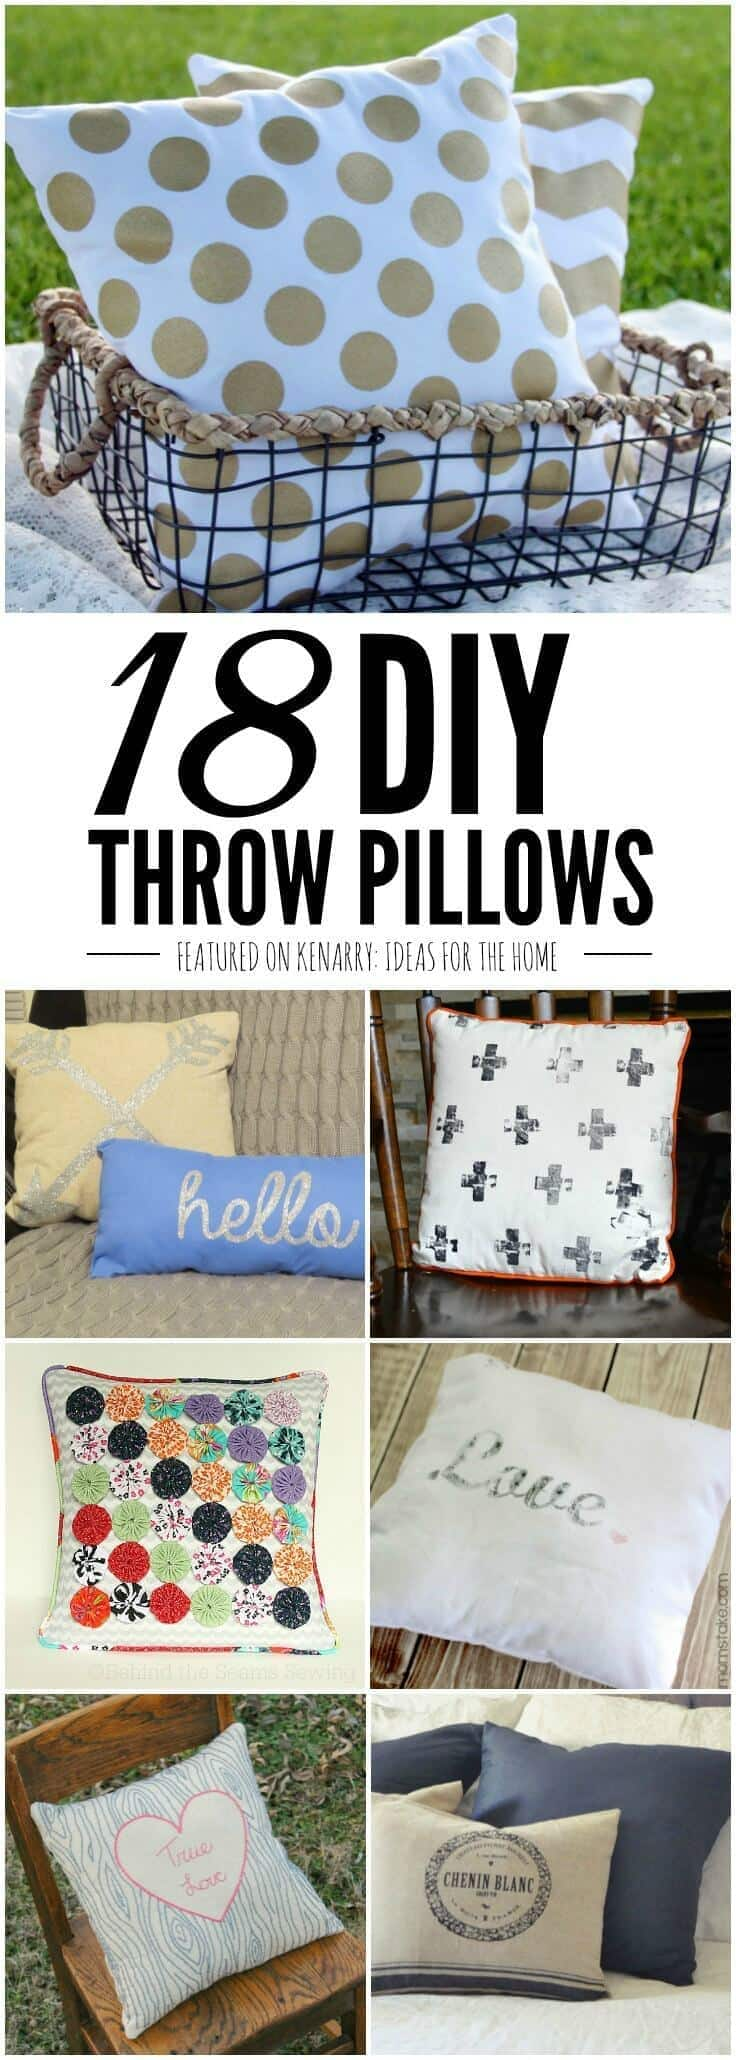 You\u0027d be surprised how easy it is to make your own pillows with these & DIY Throw Pillow Tutorials: 18 Great Home Decor Ideas pillowsntoast.com